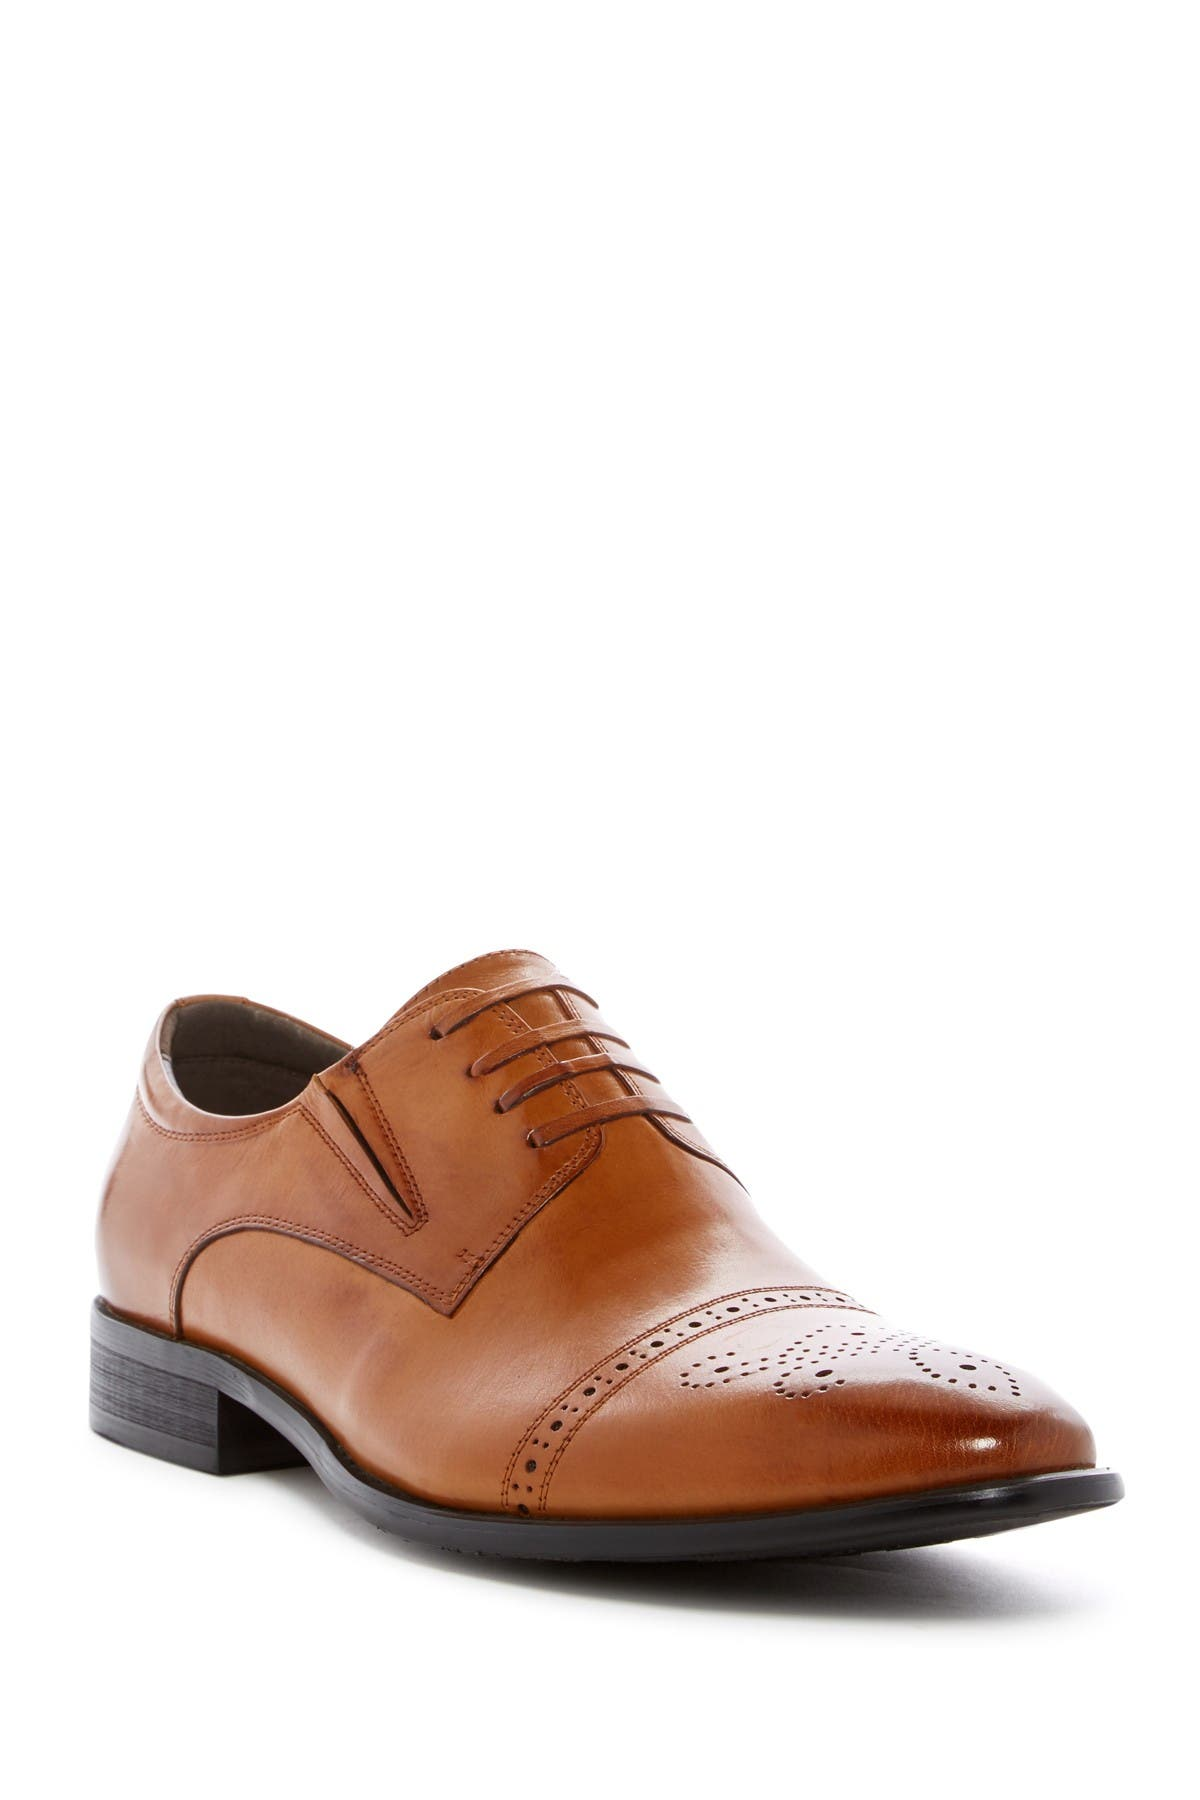 Image of Vintage Foundry Leather Slip-On Oxford